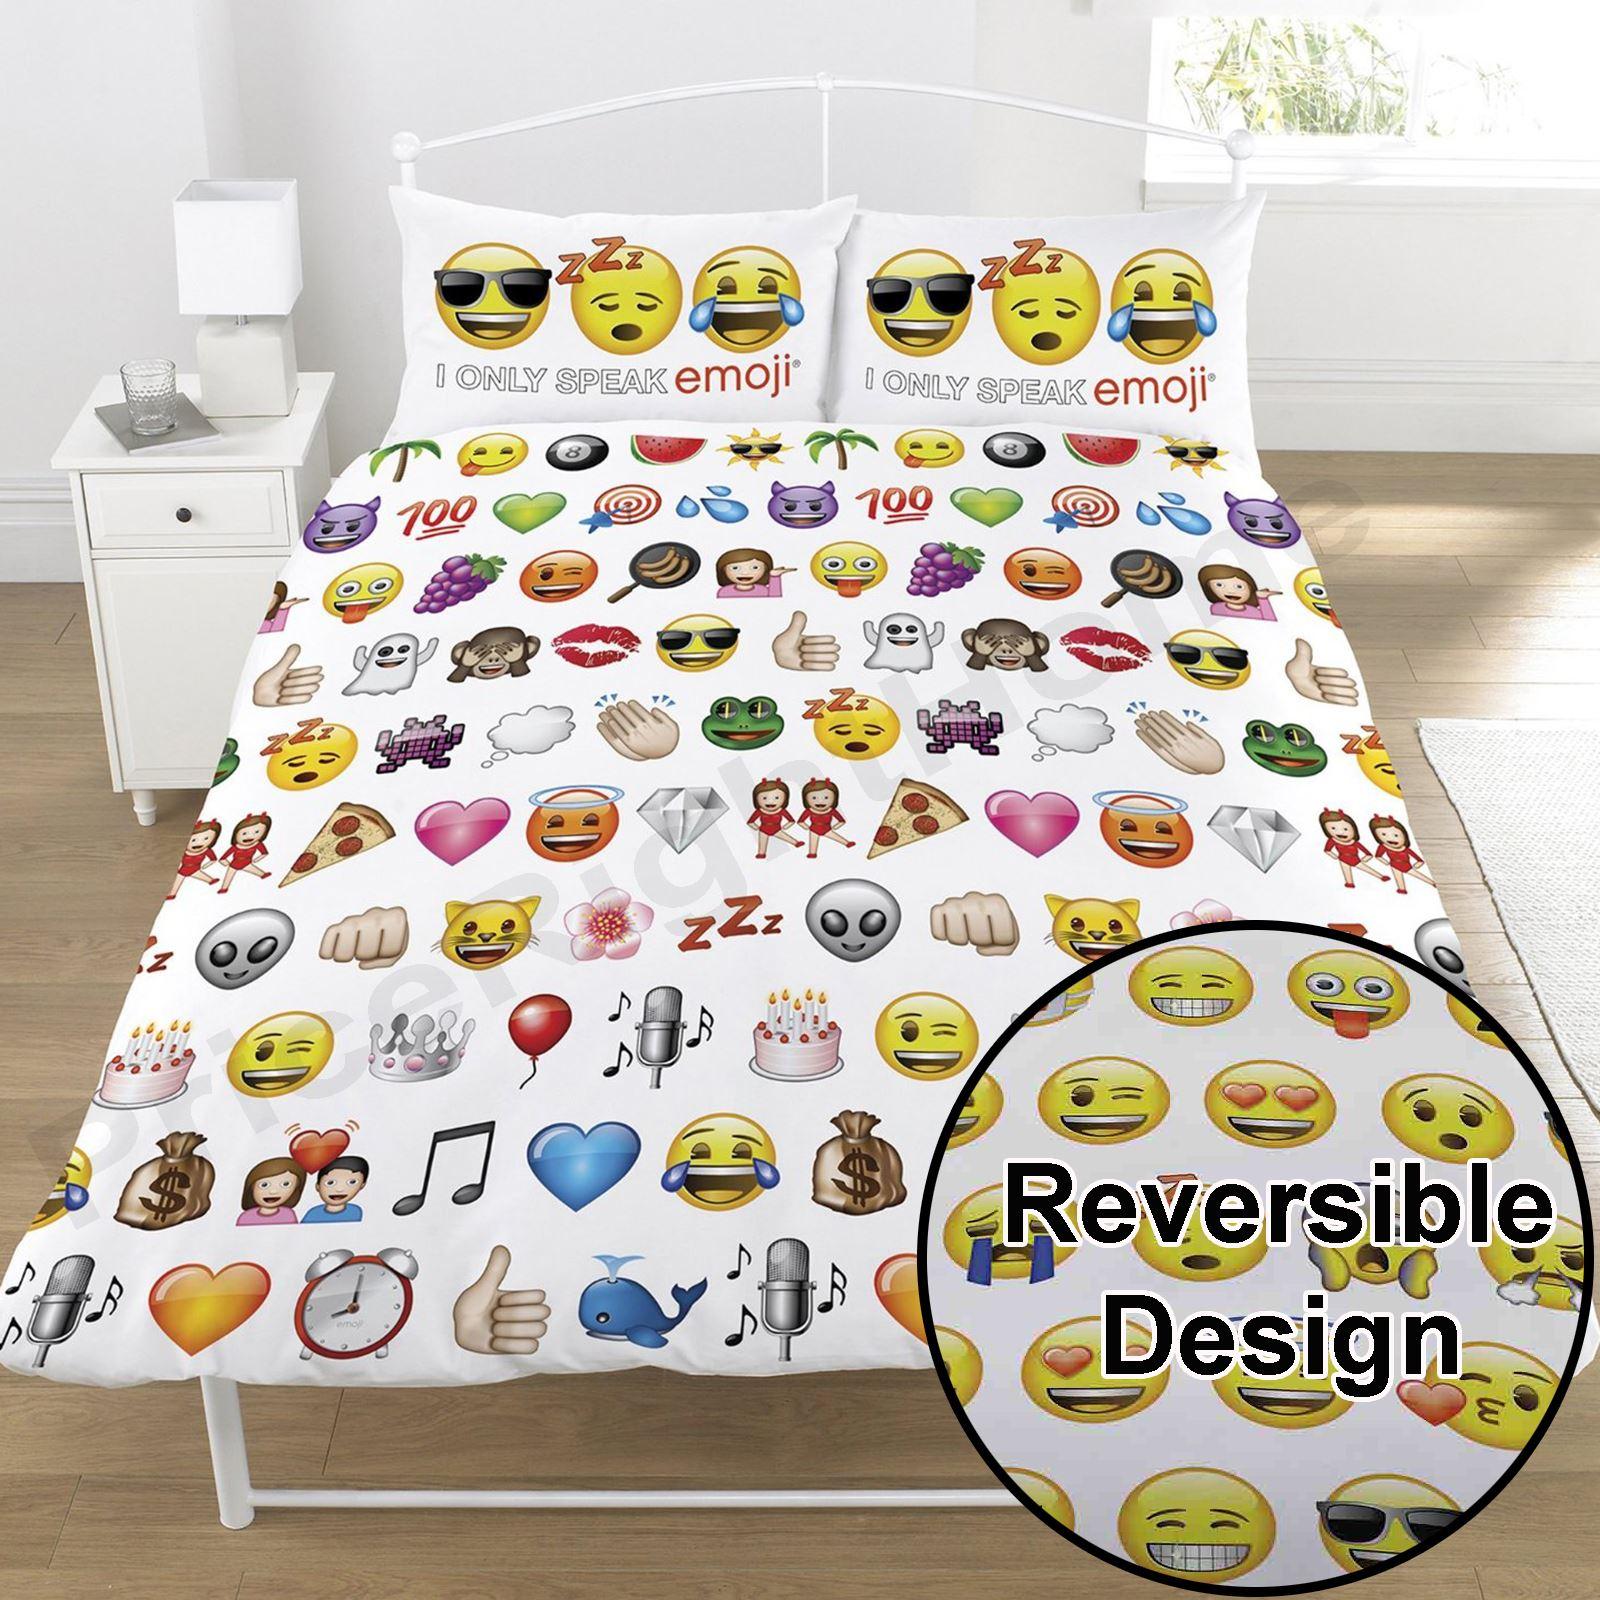 EMOJI DUVET COVER SETS SINGLE Amp DOUBLE FUNNY